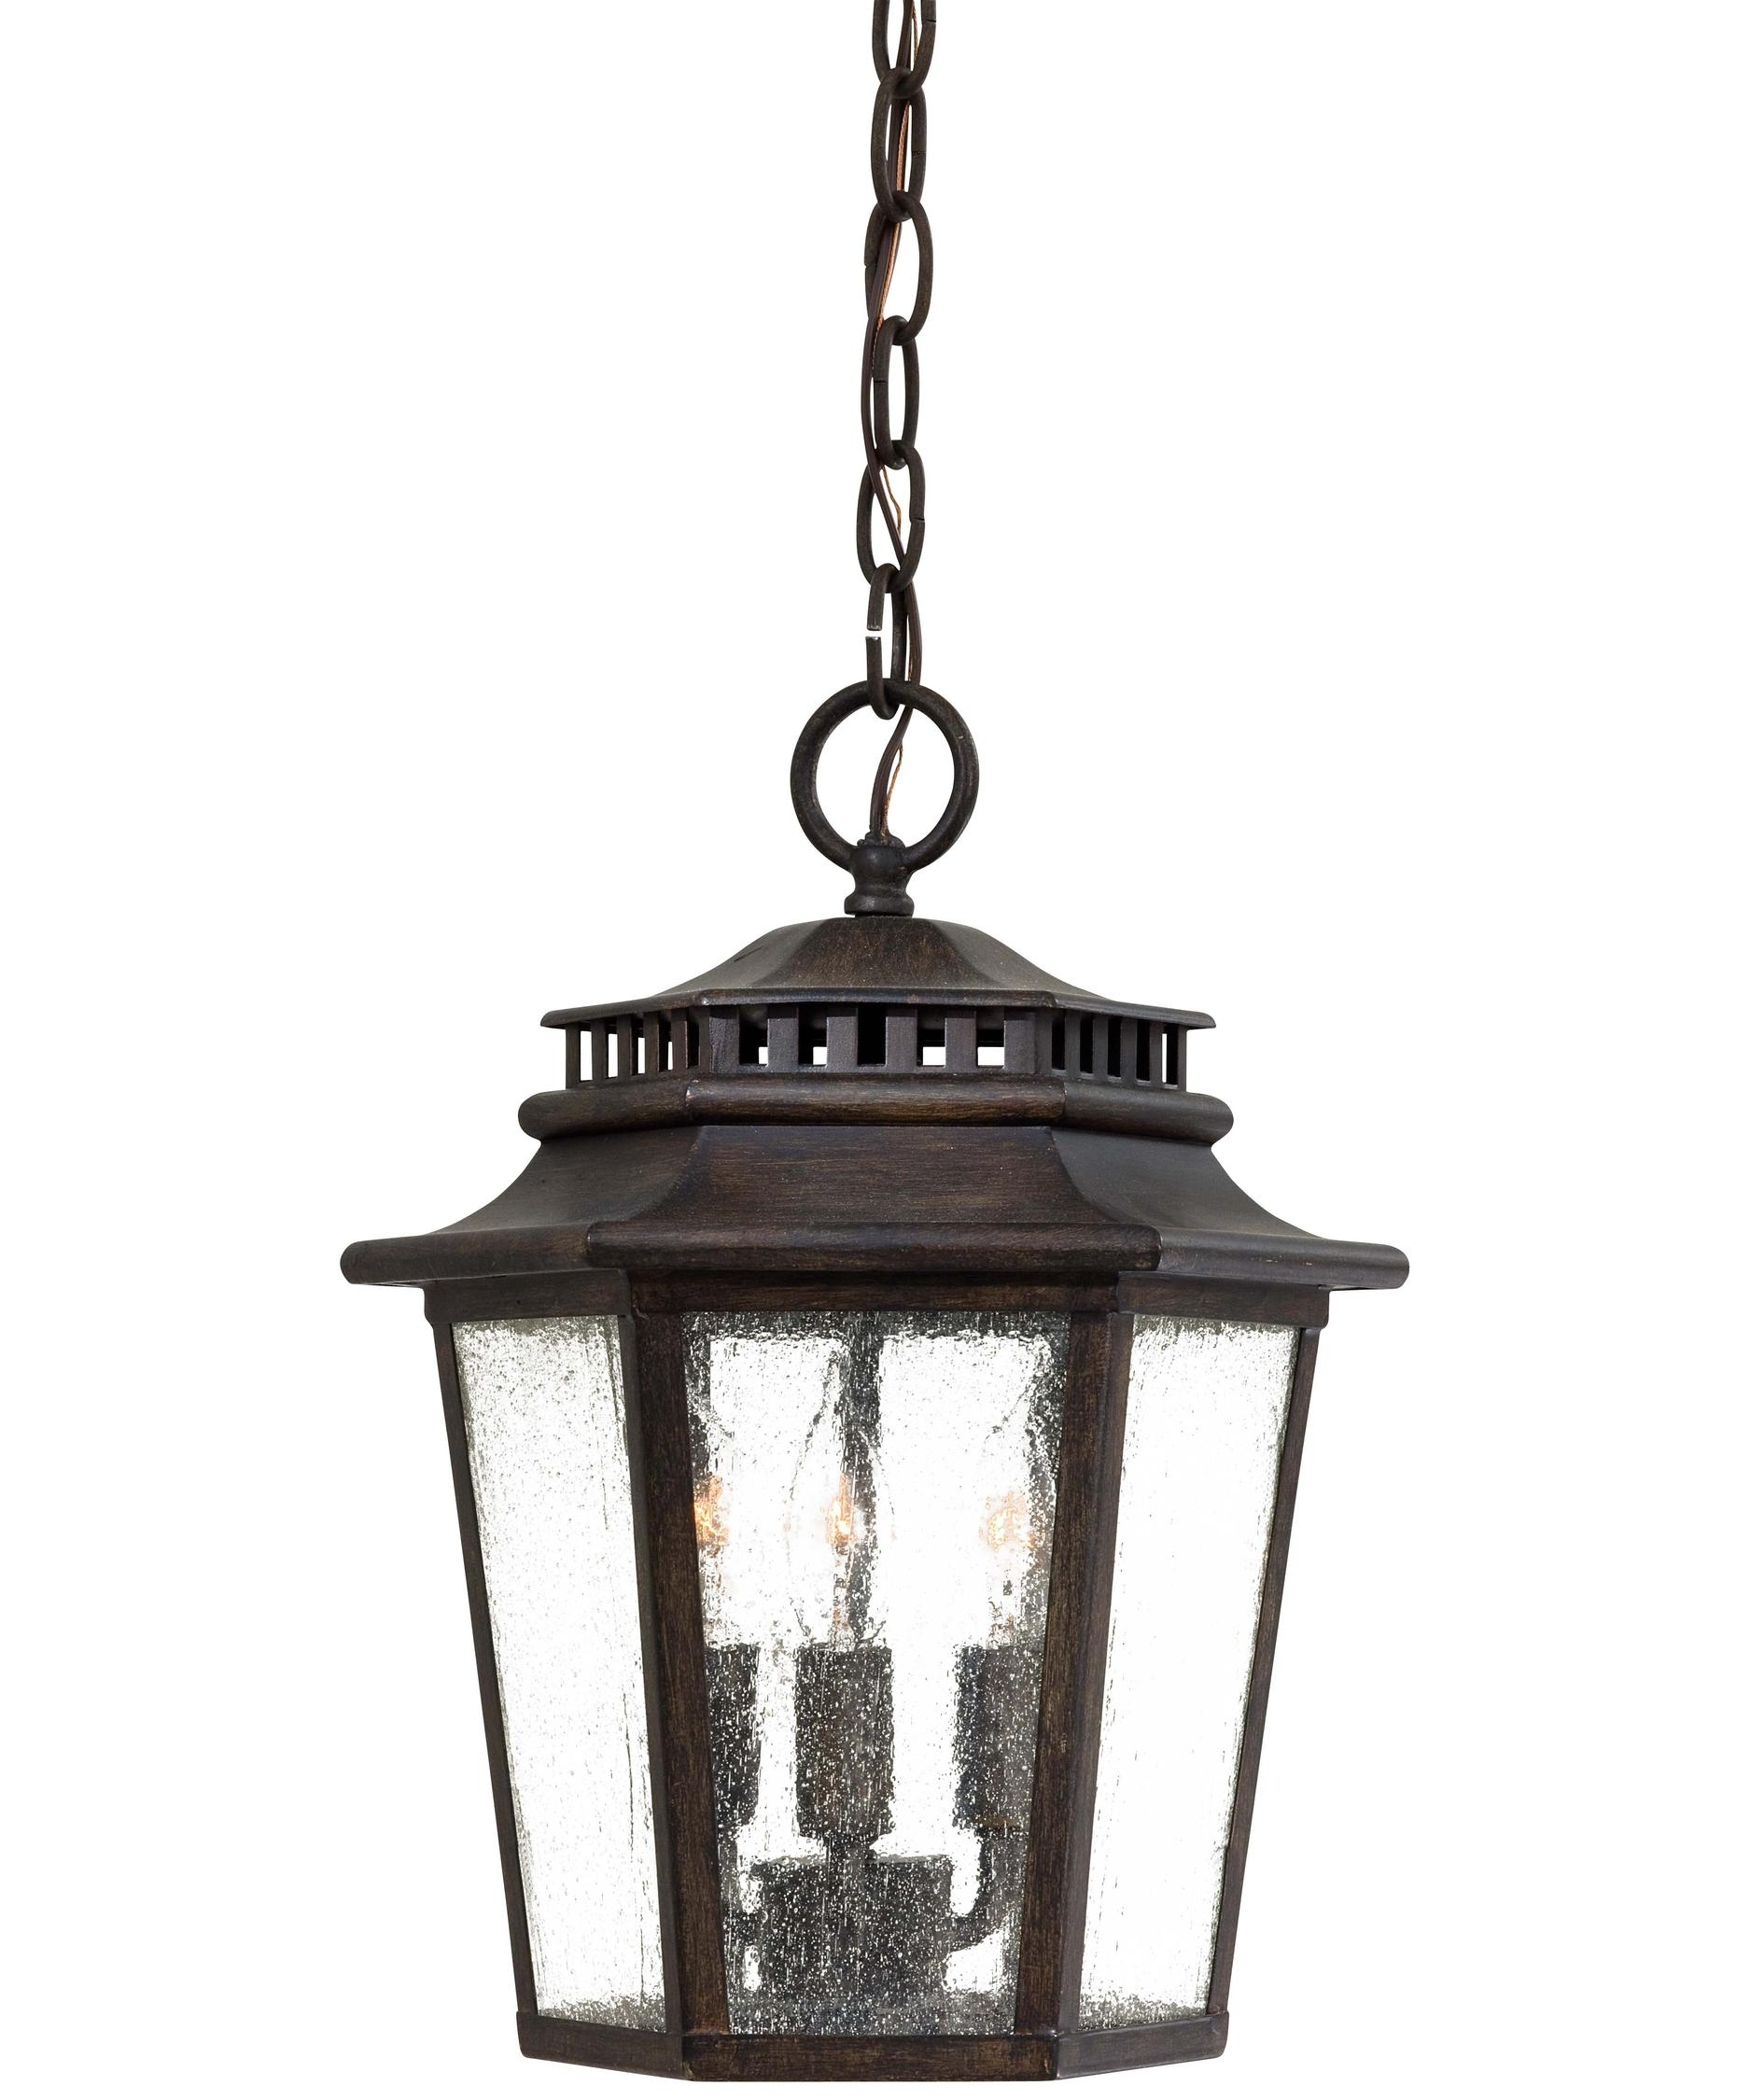 Large Hanging Outdoor Lights – Outdoor Designs Within Outdoor Hanging Porch Lights (#5 of 15)